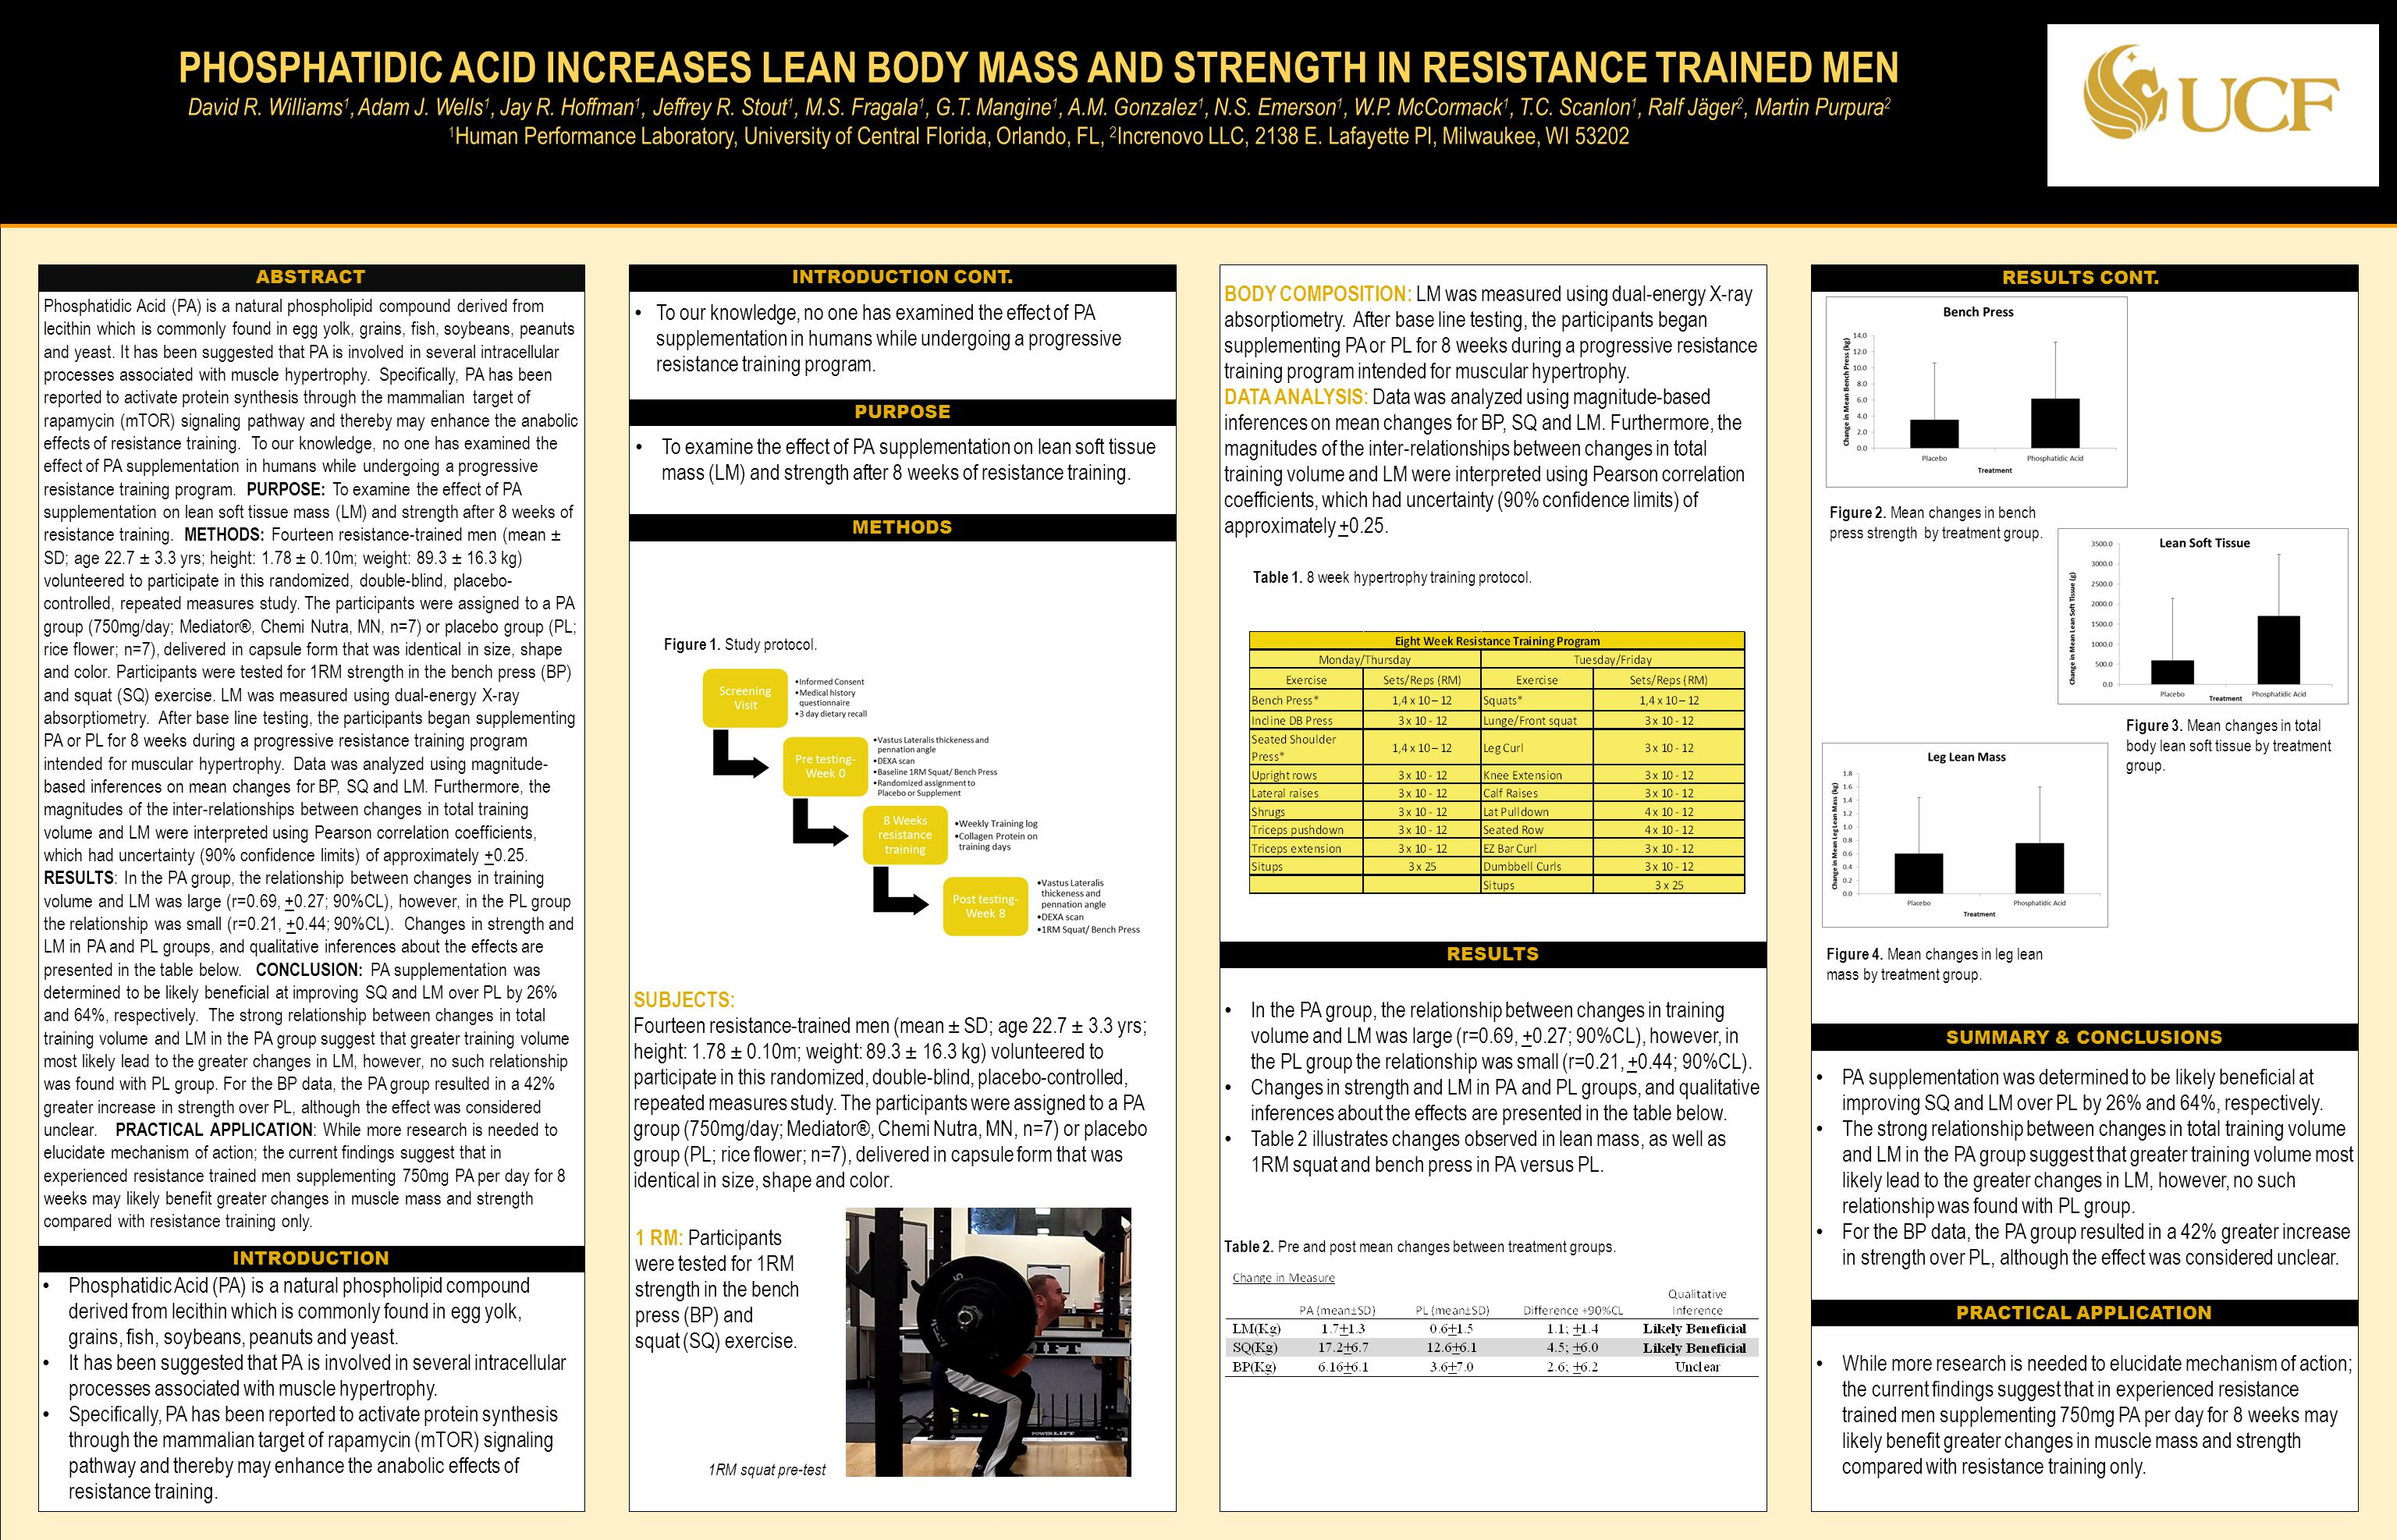 TEMPLATE DESIGN © 2008 www.PosterPresentations.com PHOSPHATIDIC ACID INCREASES LEAN BODY MASS AND STRENGTH IN RESISTANCE TRAINED MEN David R. Williams